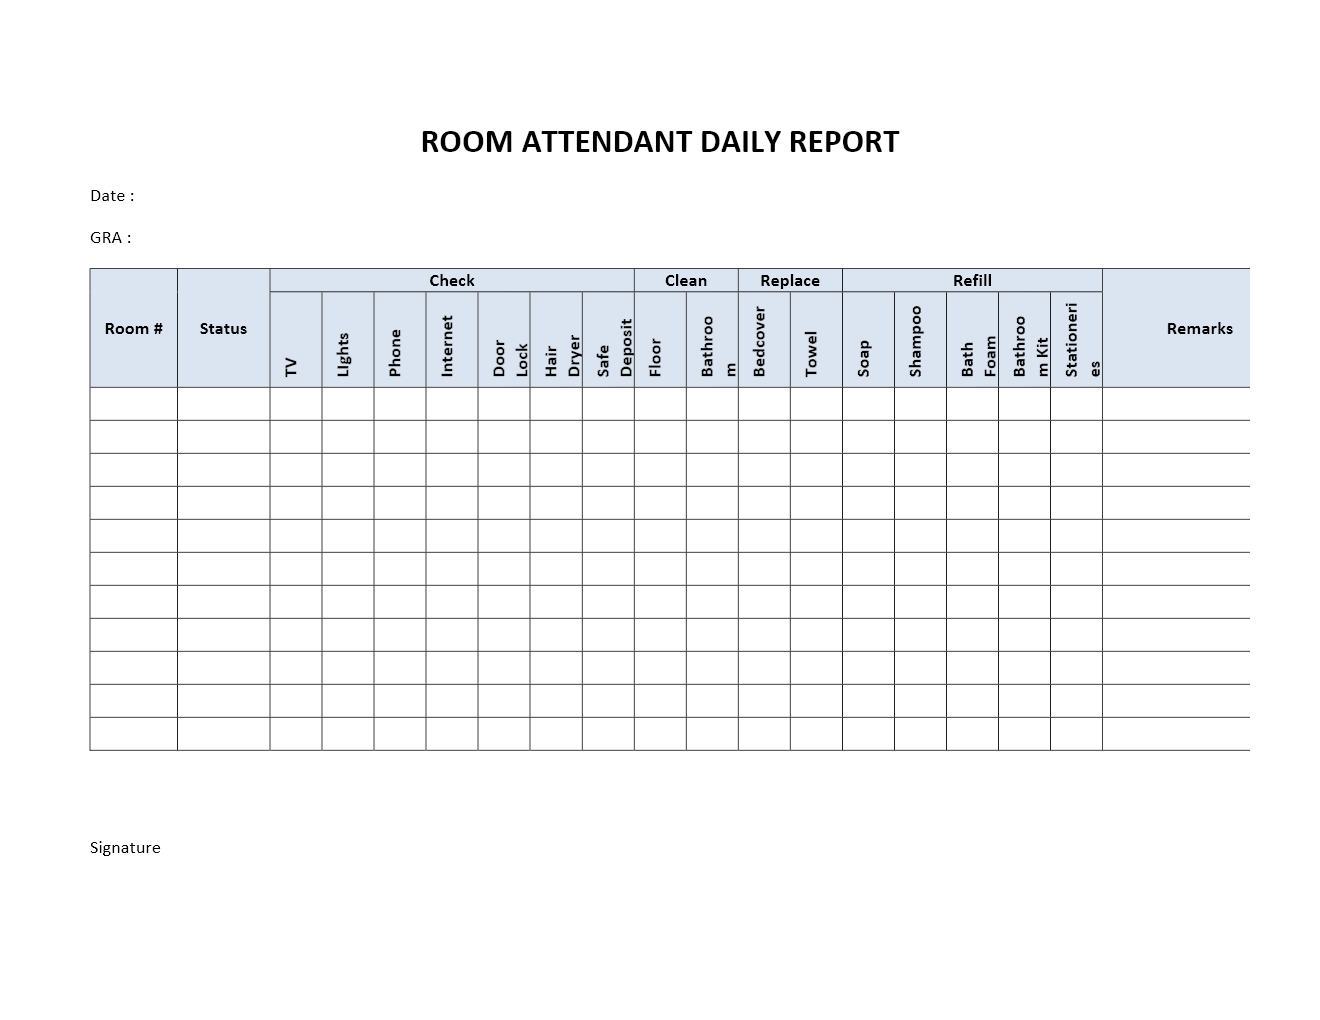 Hotel Room Attendant Daily Report Template For Word